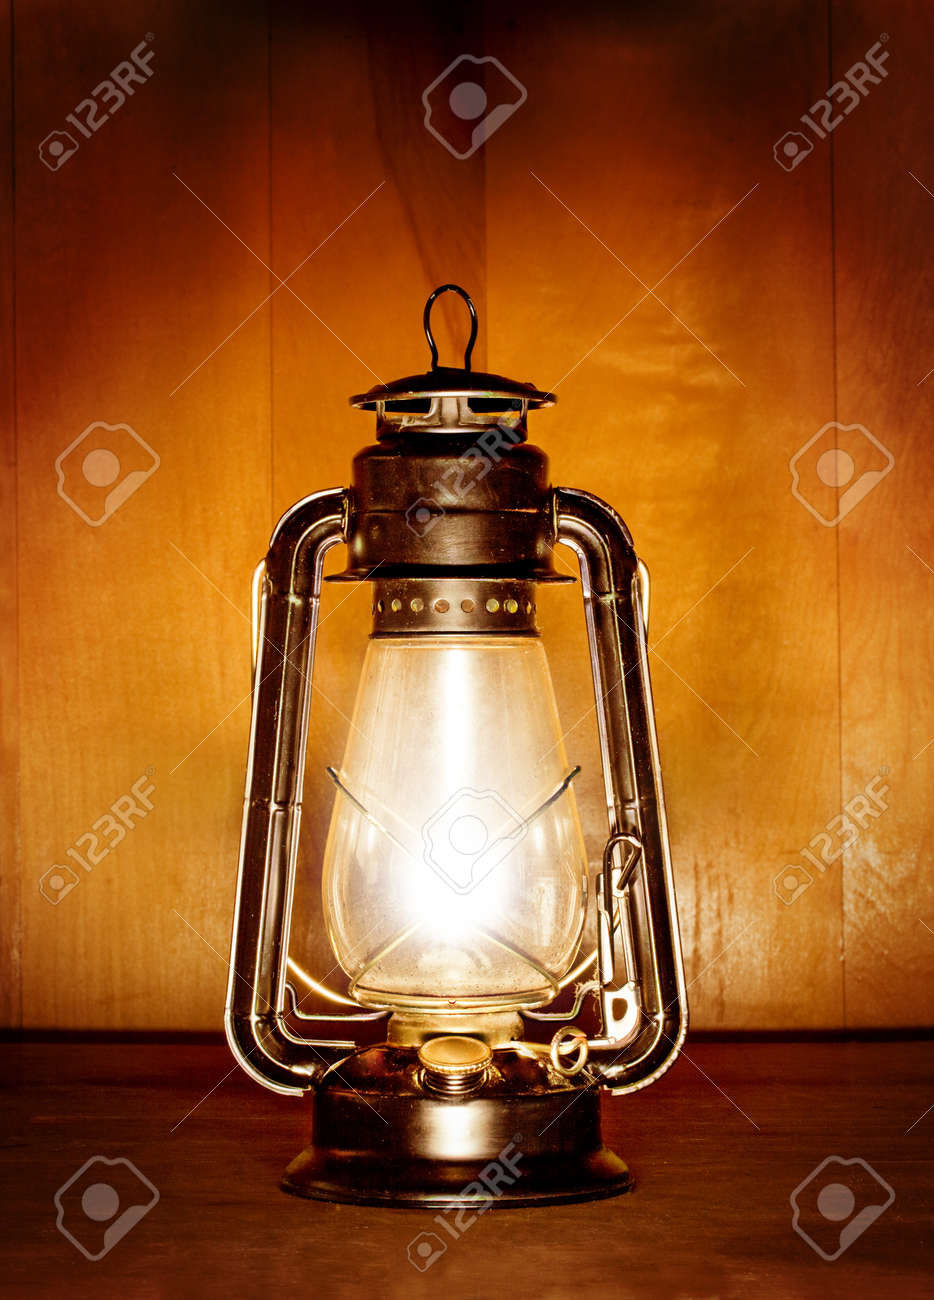 Old Oil Lamp Light Over Wood Plank Background Stock Photo, Picture ...